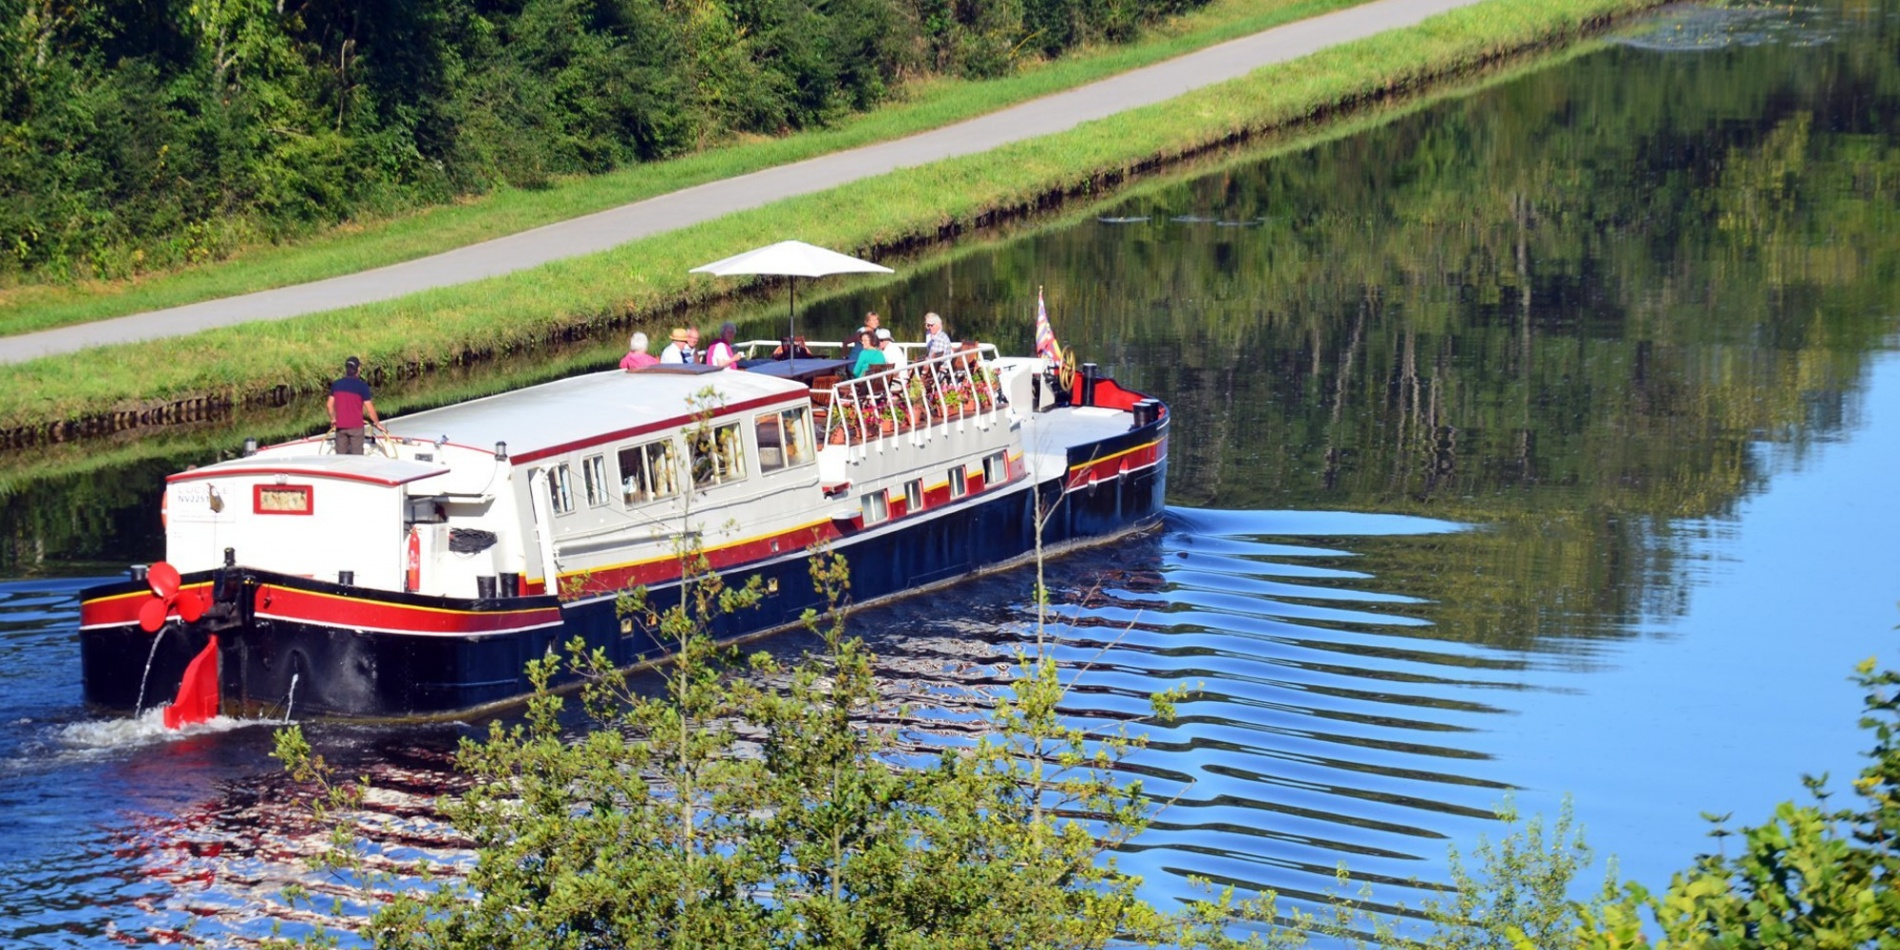 Burgundy River Cruise Experience - France river cruise